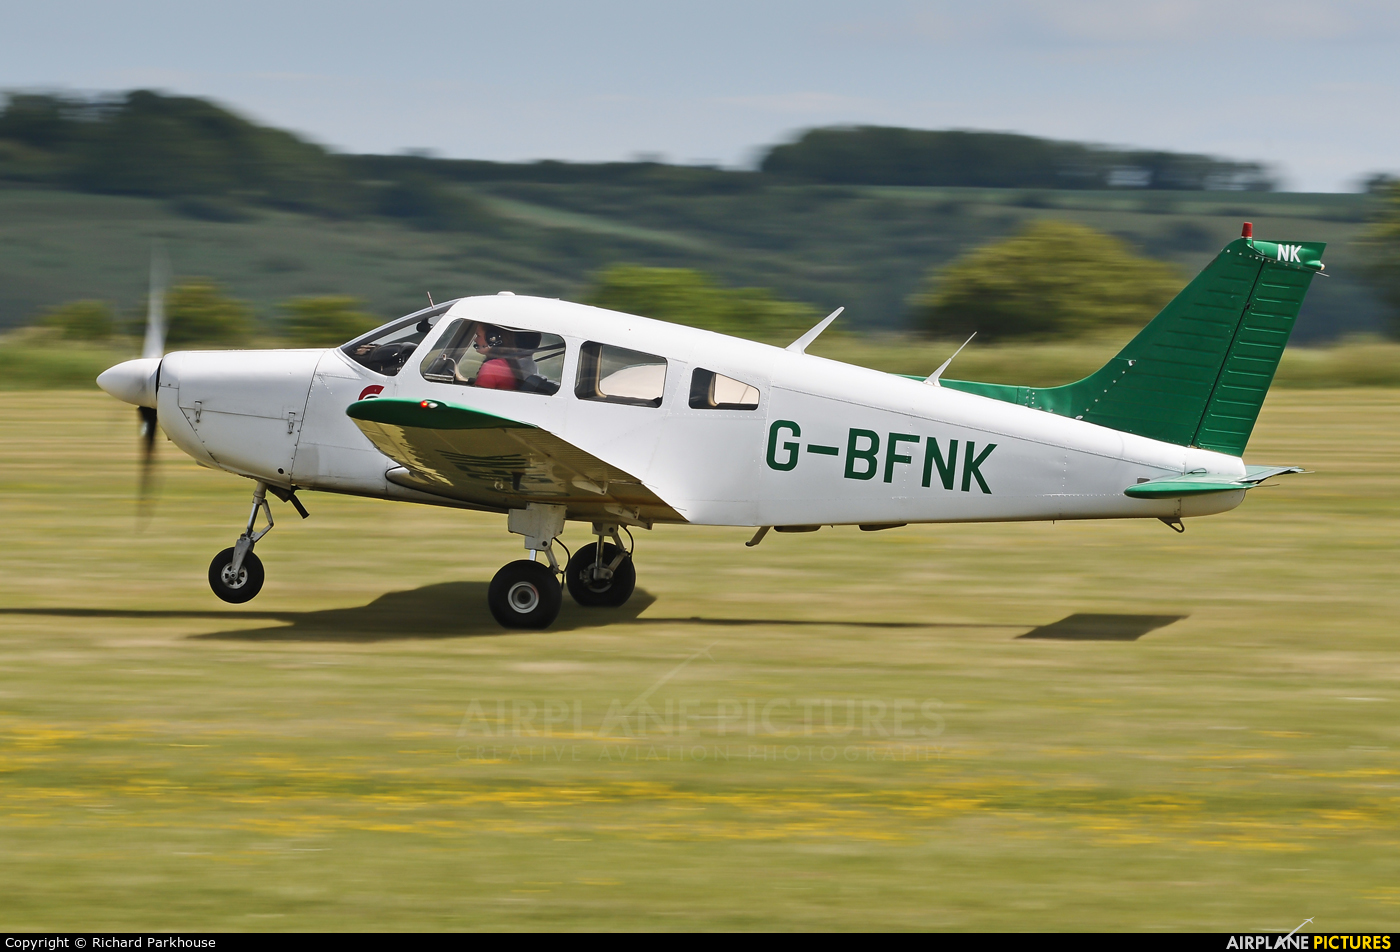 Private G_BFNK aircraft at Old Sarum